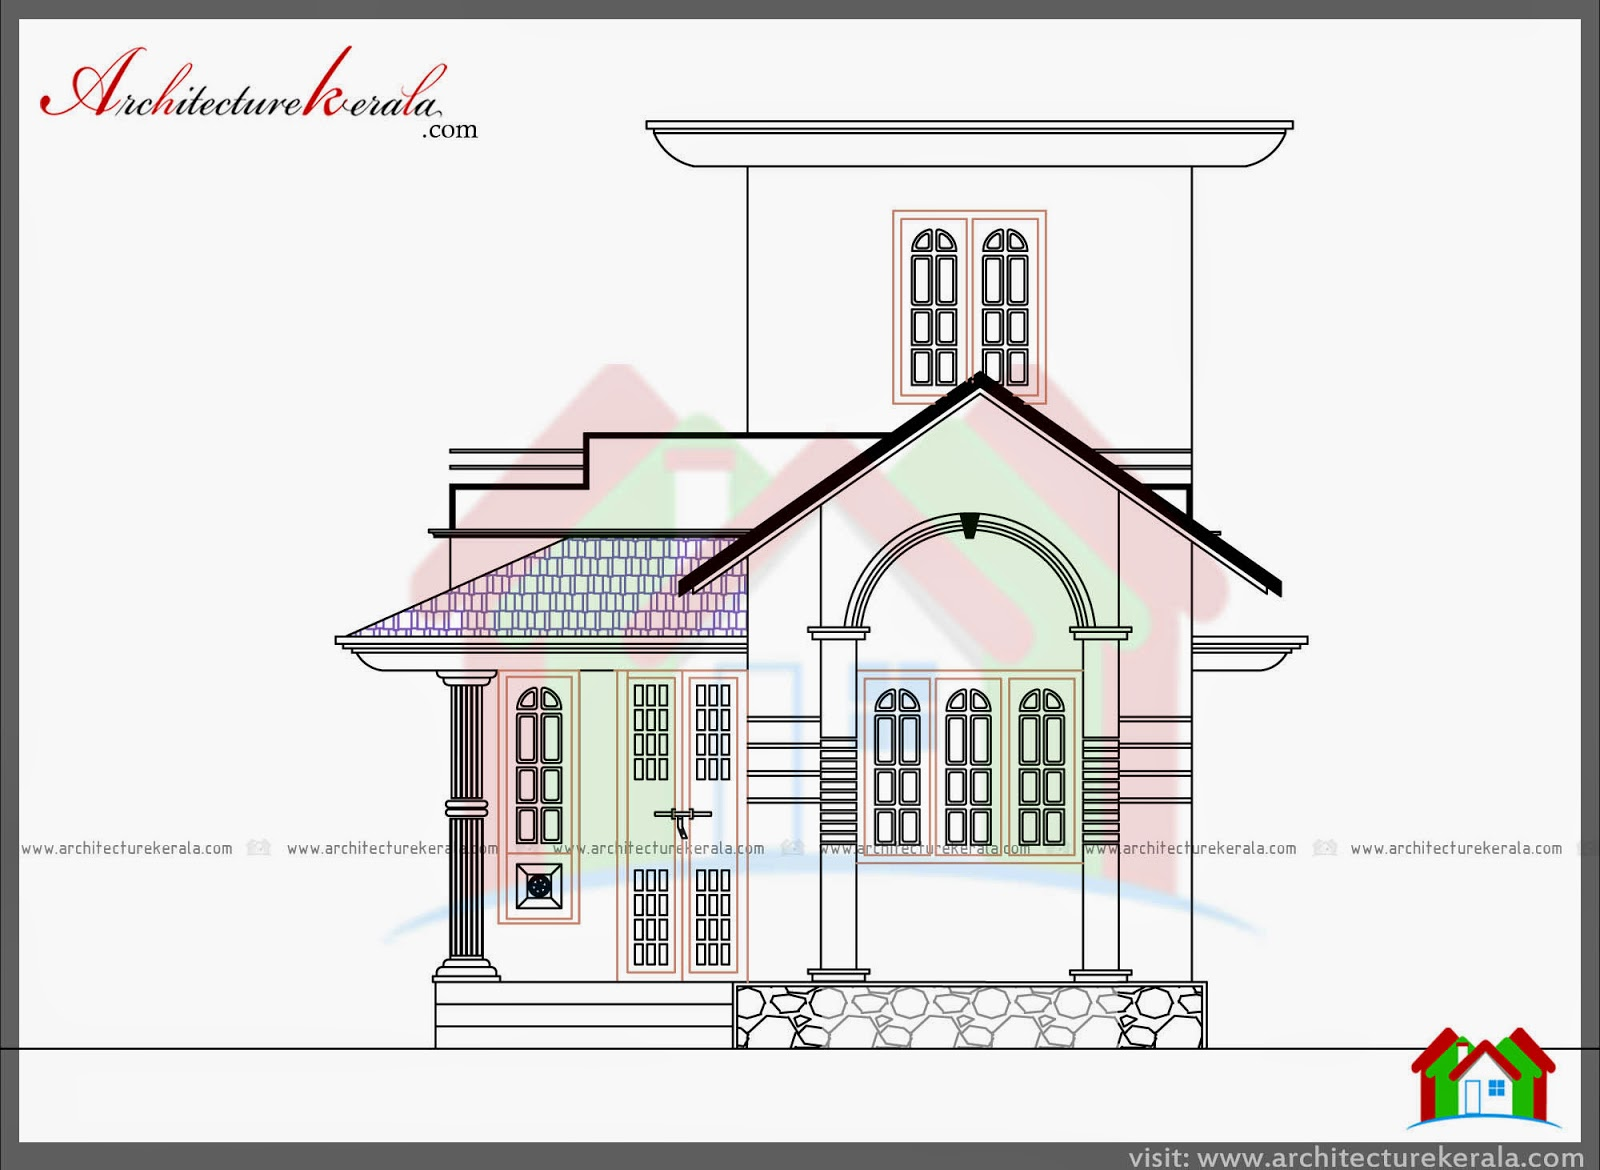 750 sq ft house plan and elevation architecture kerala for House plan and elevation